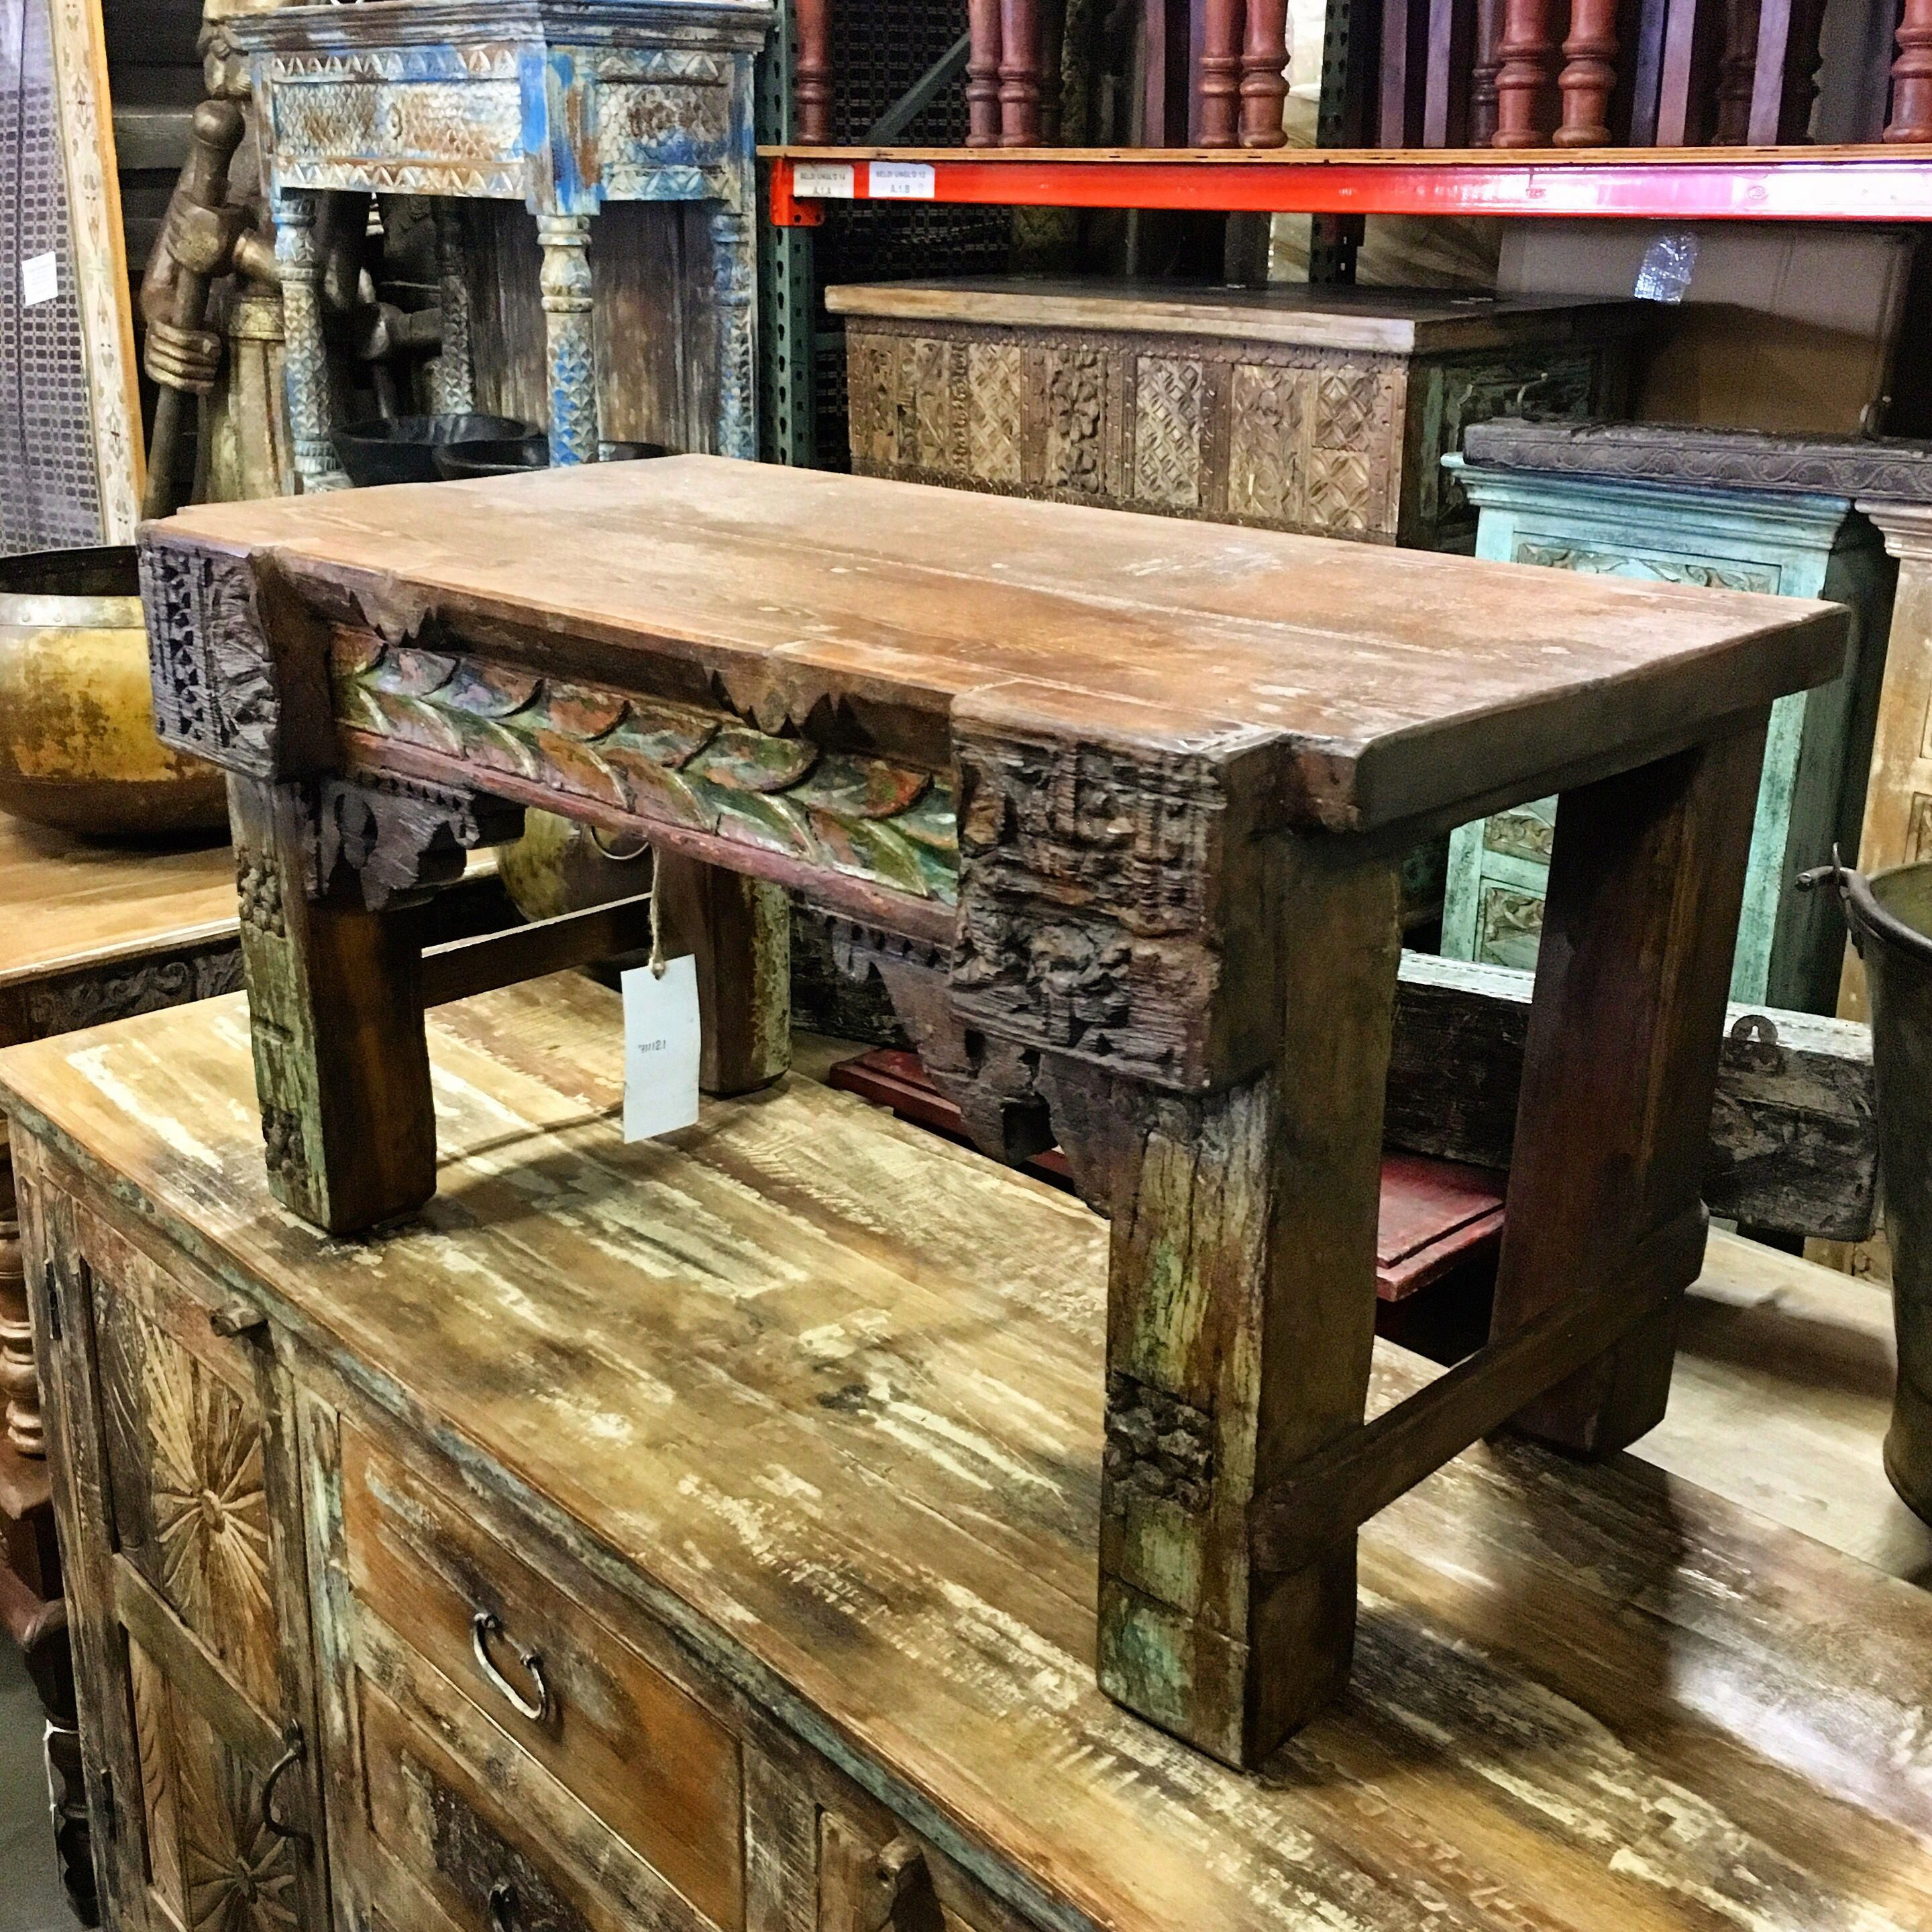 Short Reclaimed Wooden Backless Bench Item 712121 Measures 34x18x18